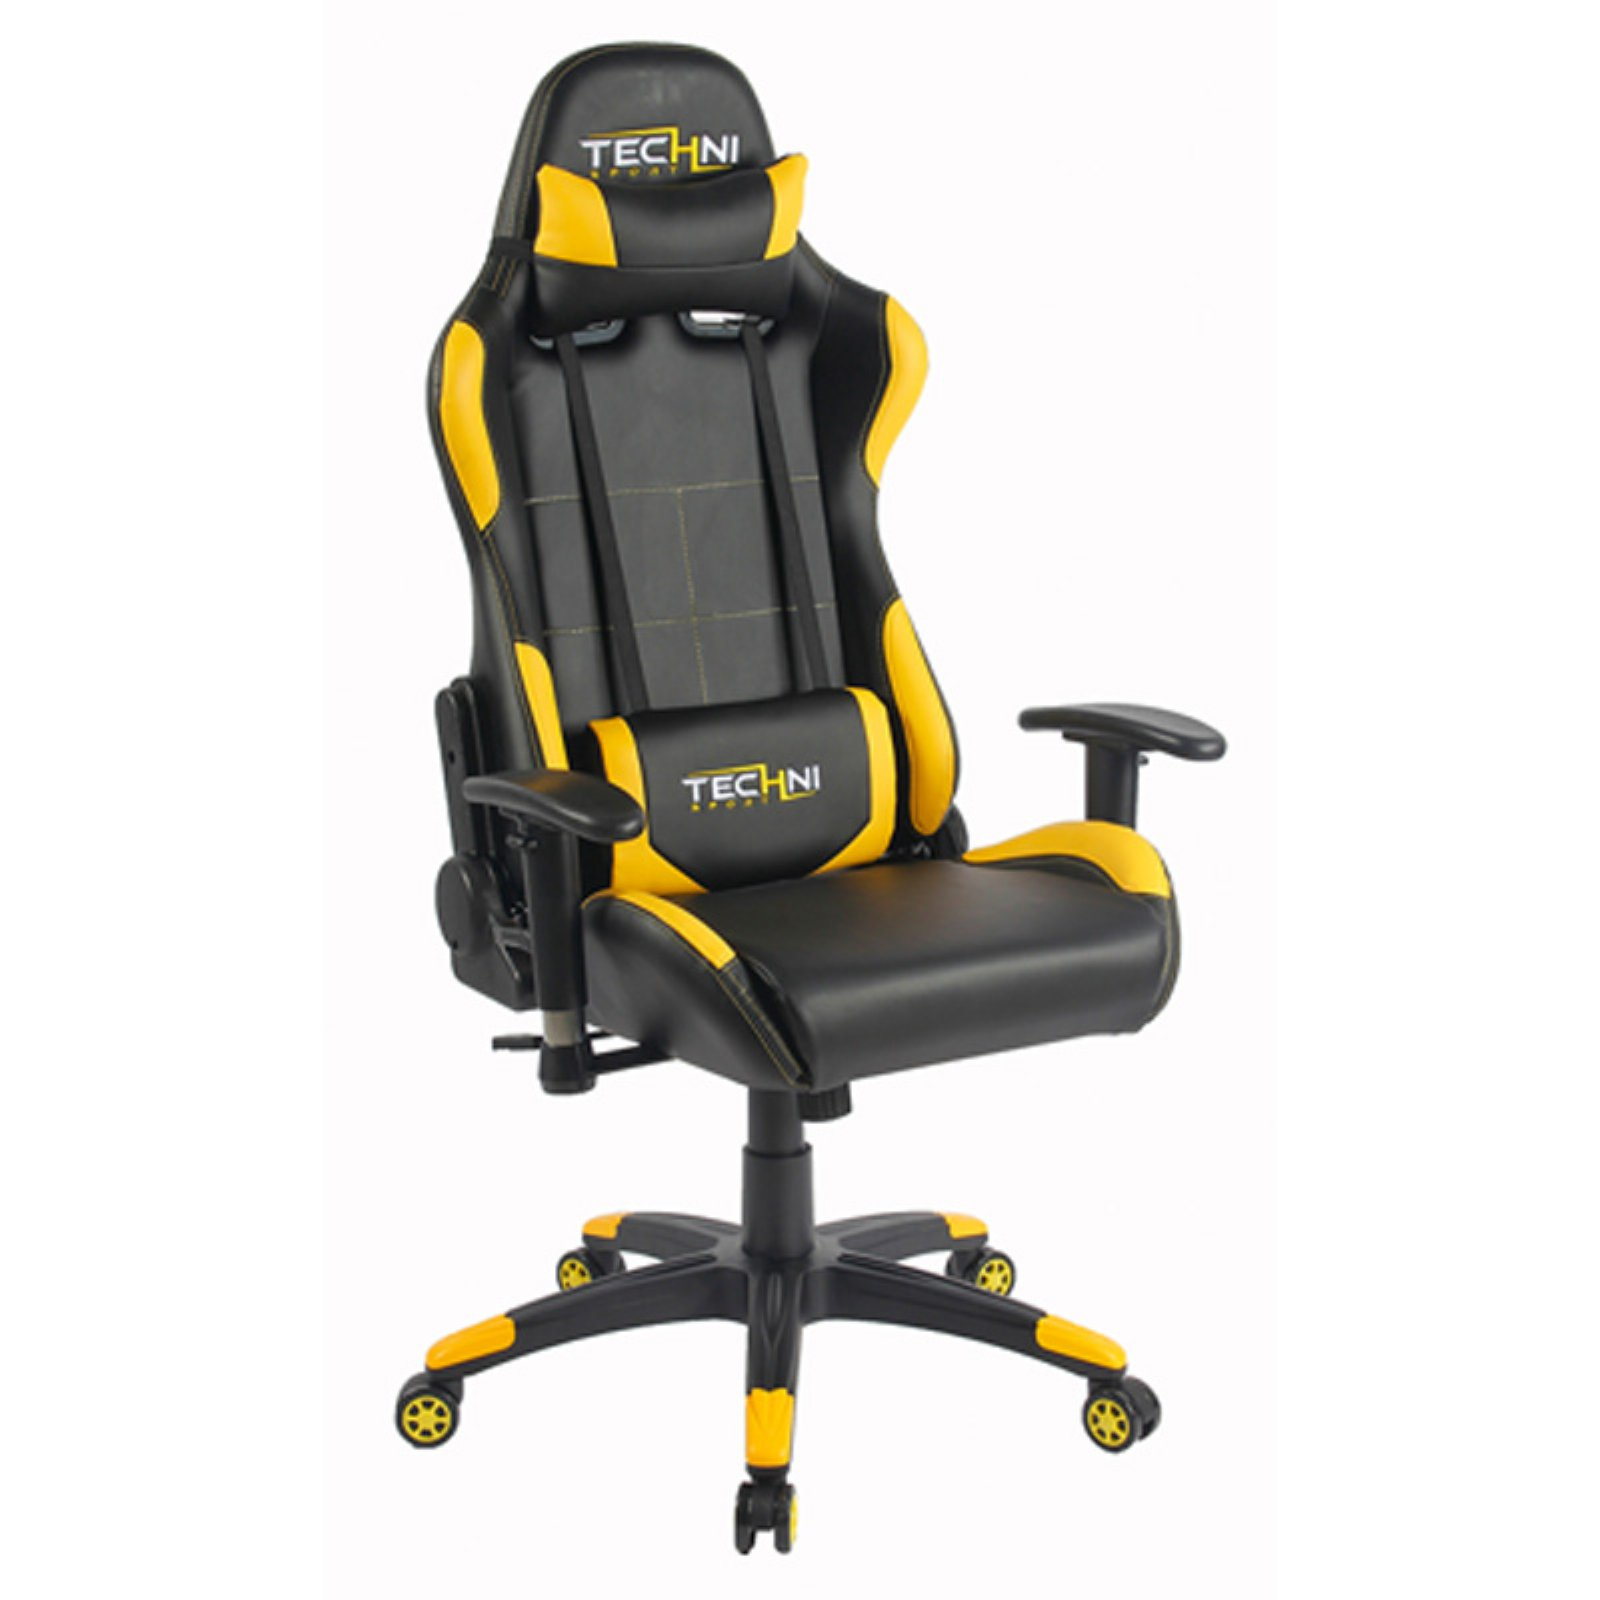 Techni Sport Office-PC Gaming Chair, Multiple Colors